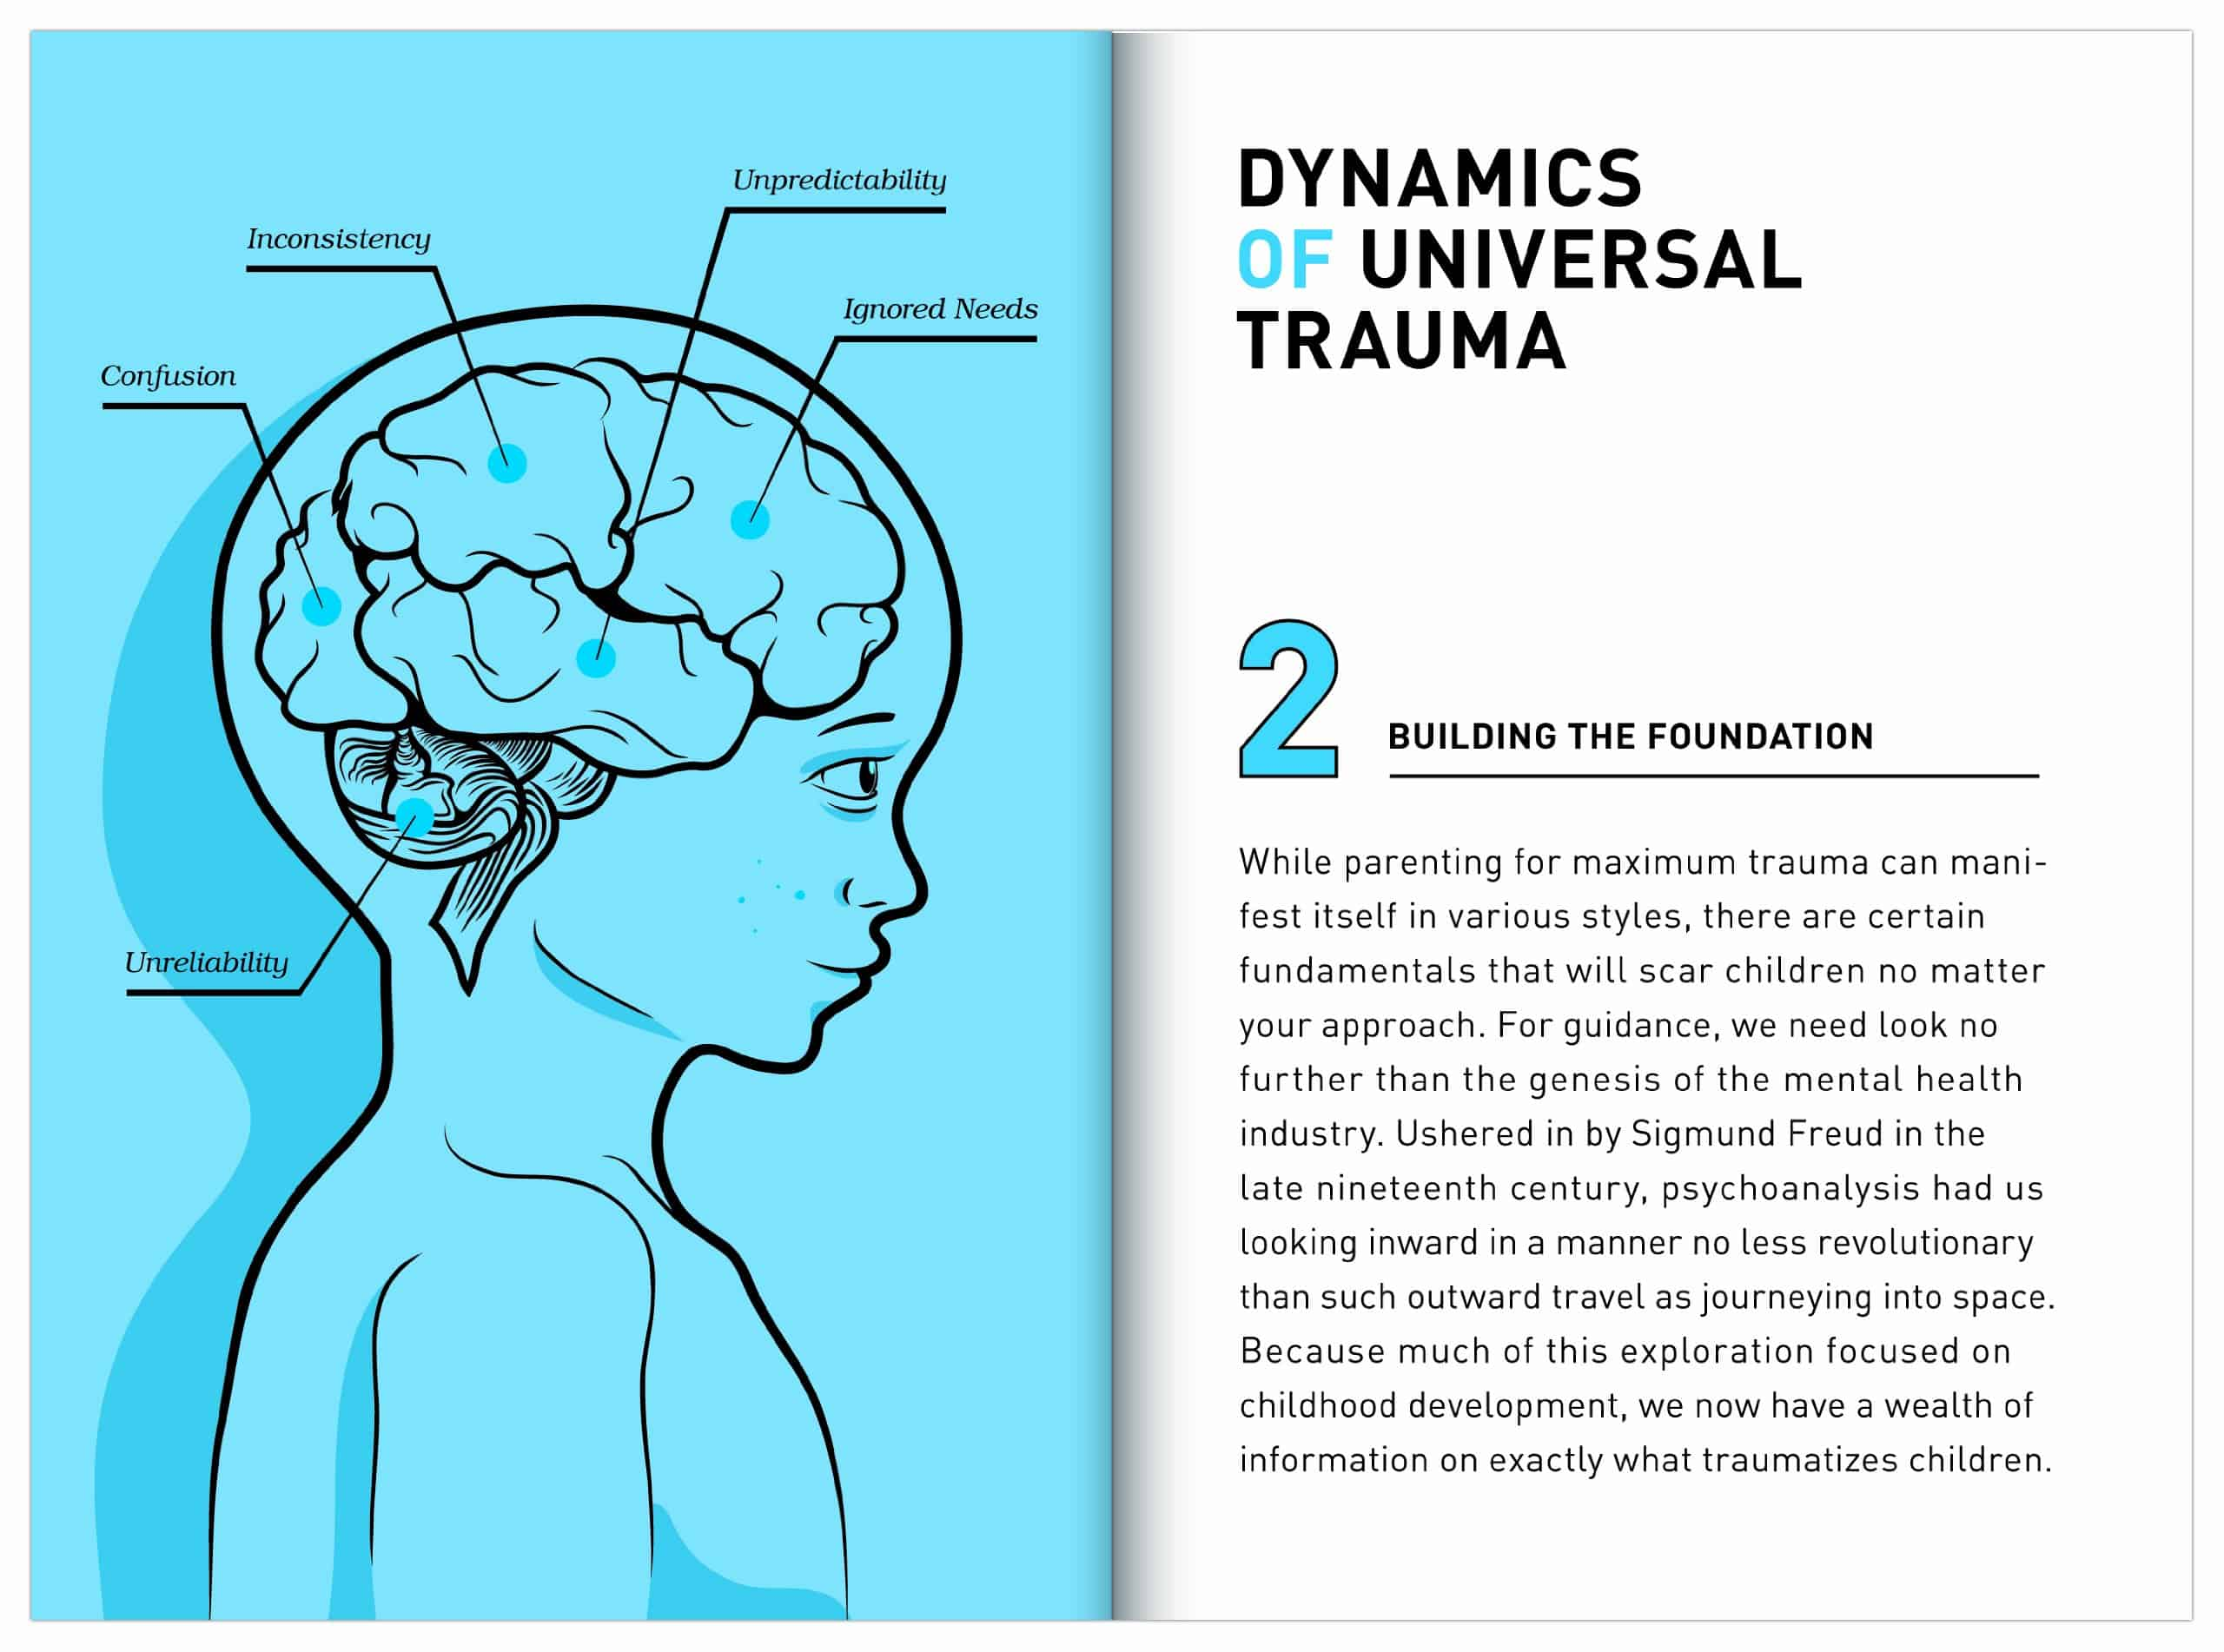 How to Traumatize Your Children 7 Proven Methods Dynamics of Universal Trauma